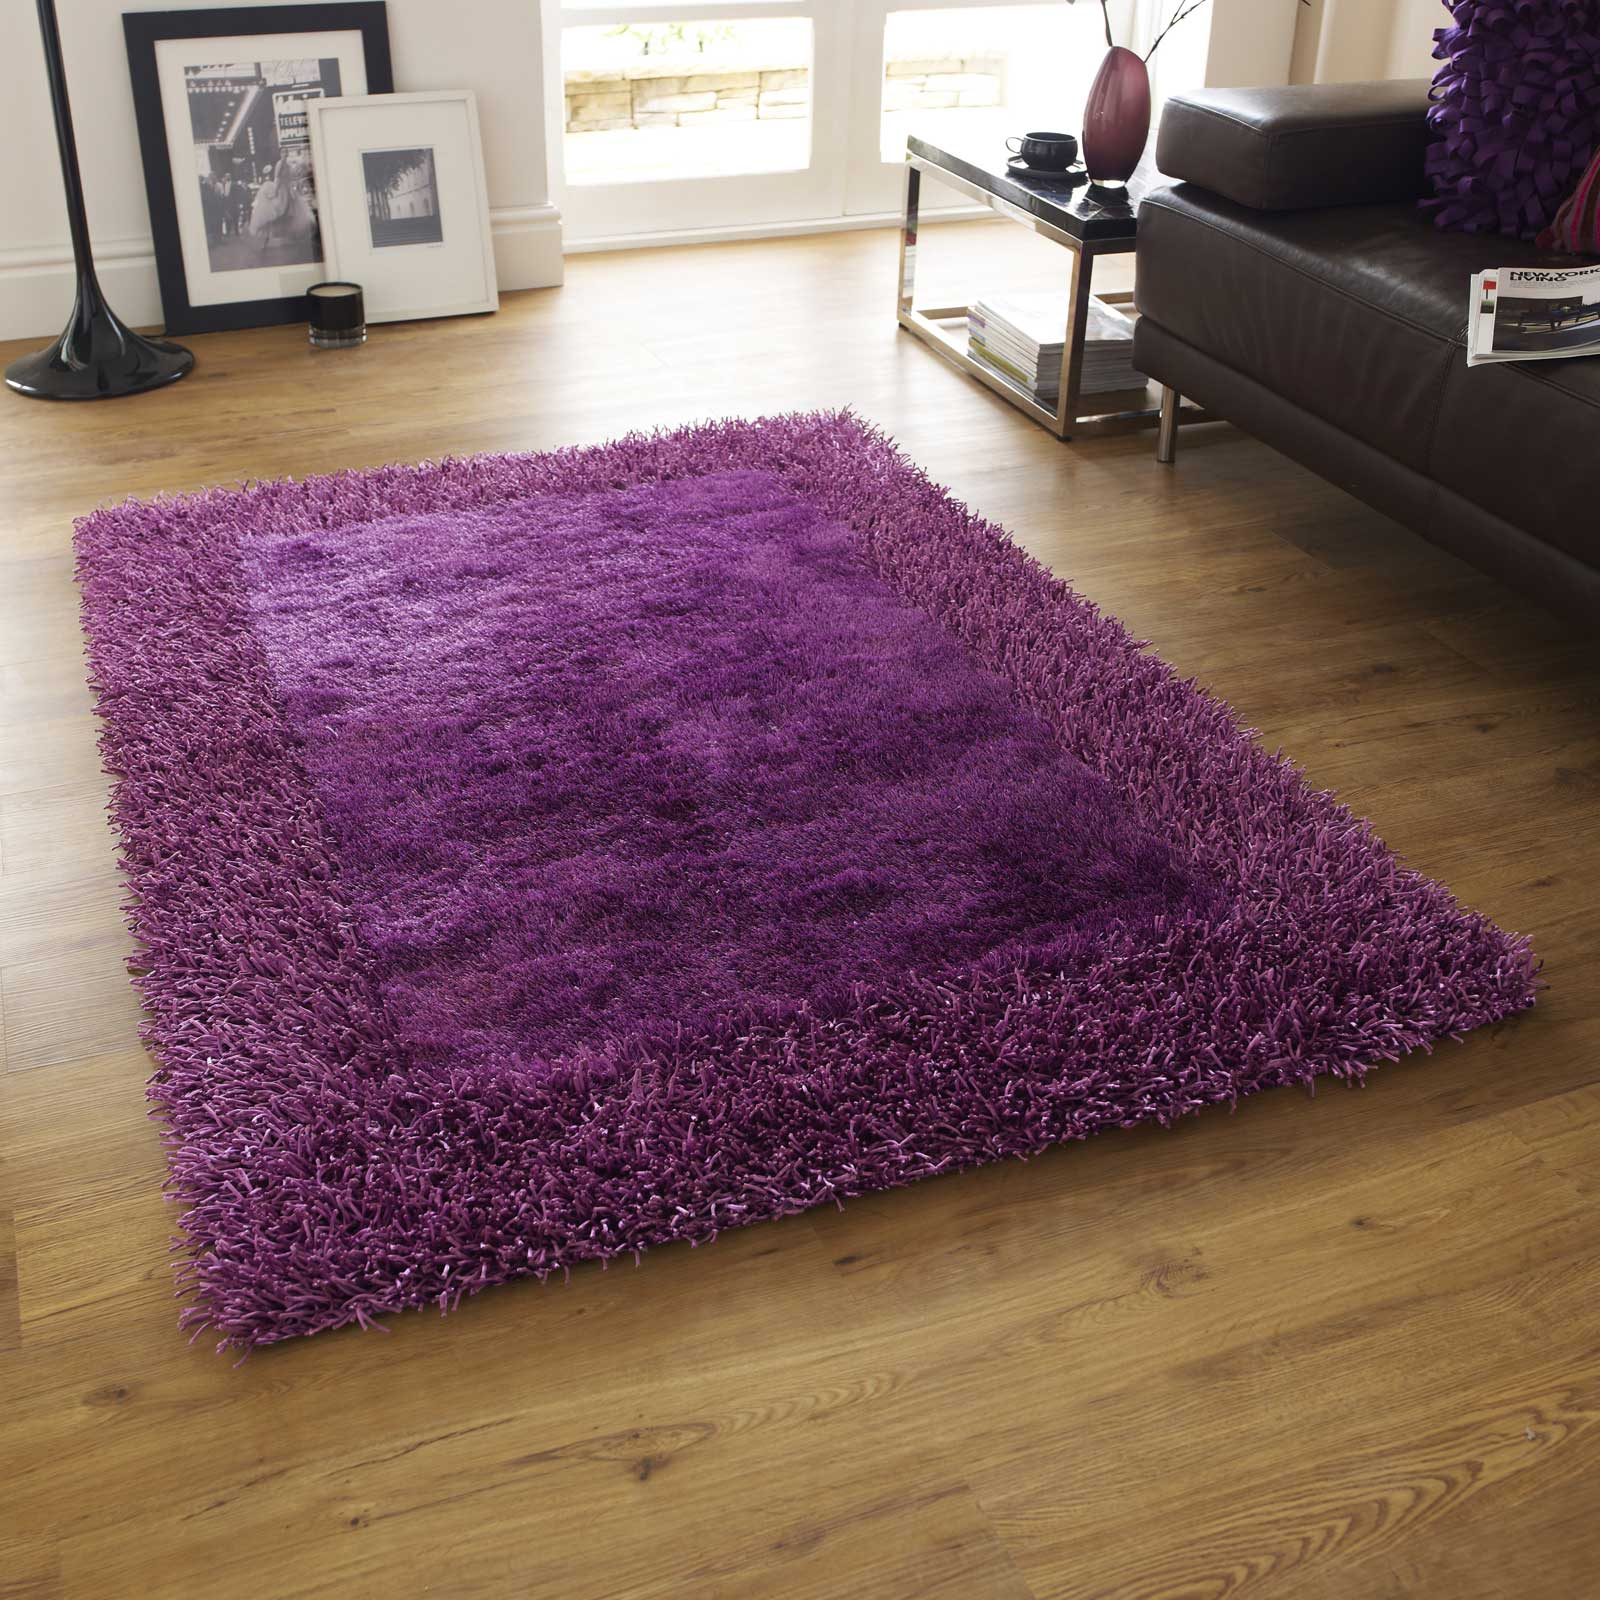 Sable Two Shiney Shaggy Rugs in Purple